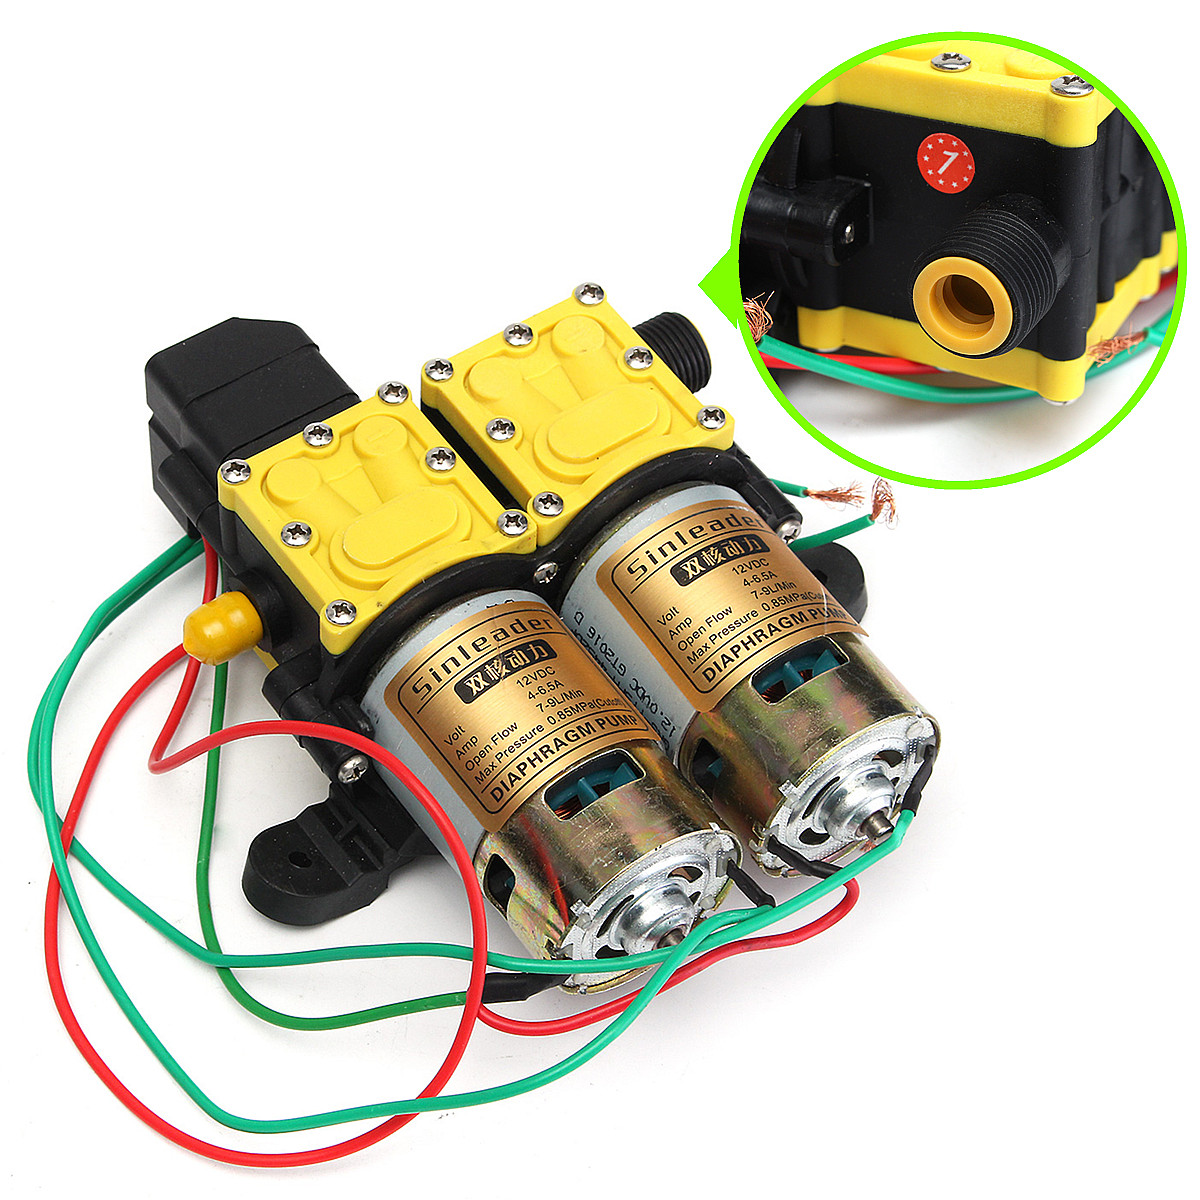 Action additionally Dirt Driver Bulldog Mk4 240v Pressure Washer as well Air Handling Unit in addition Graymill Parts Washer Wiring Diagram further Honda Gc160 Fuel Filter. on washer centrifugal switch